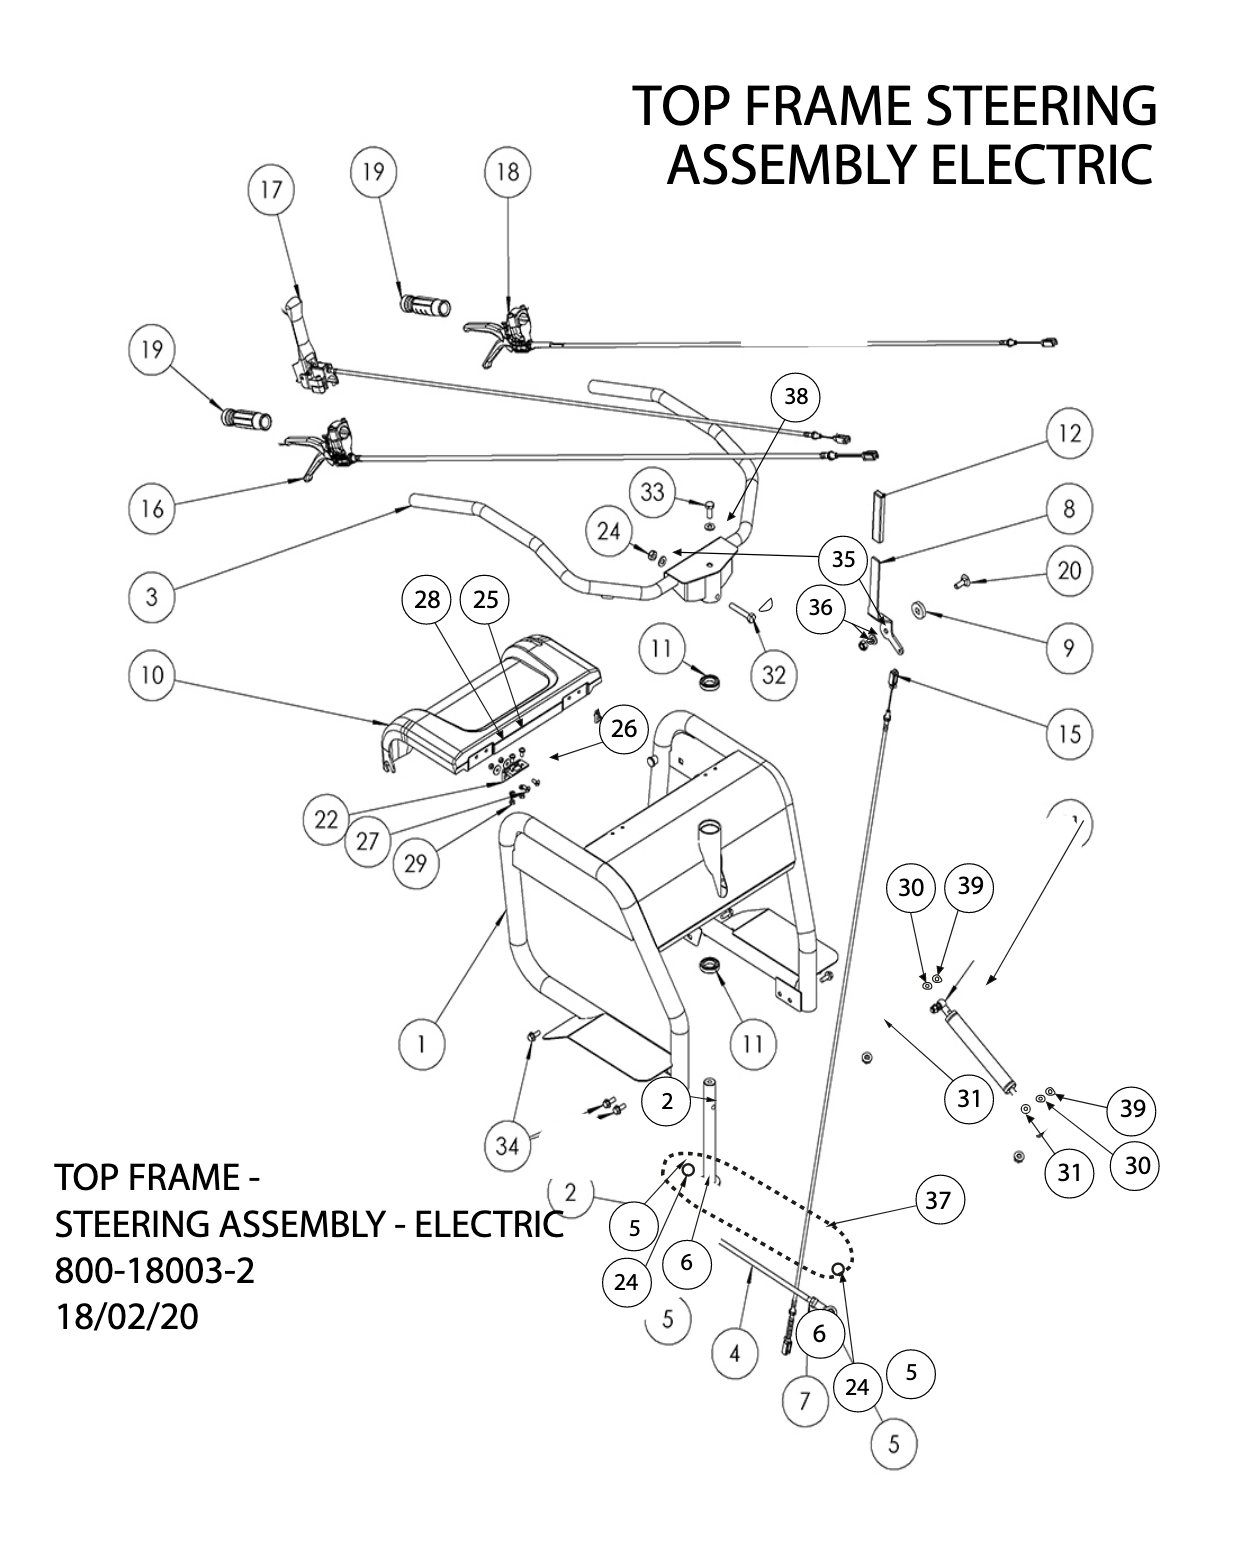 Top Frame Steering Assembly Electric